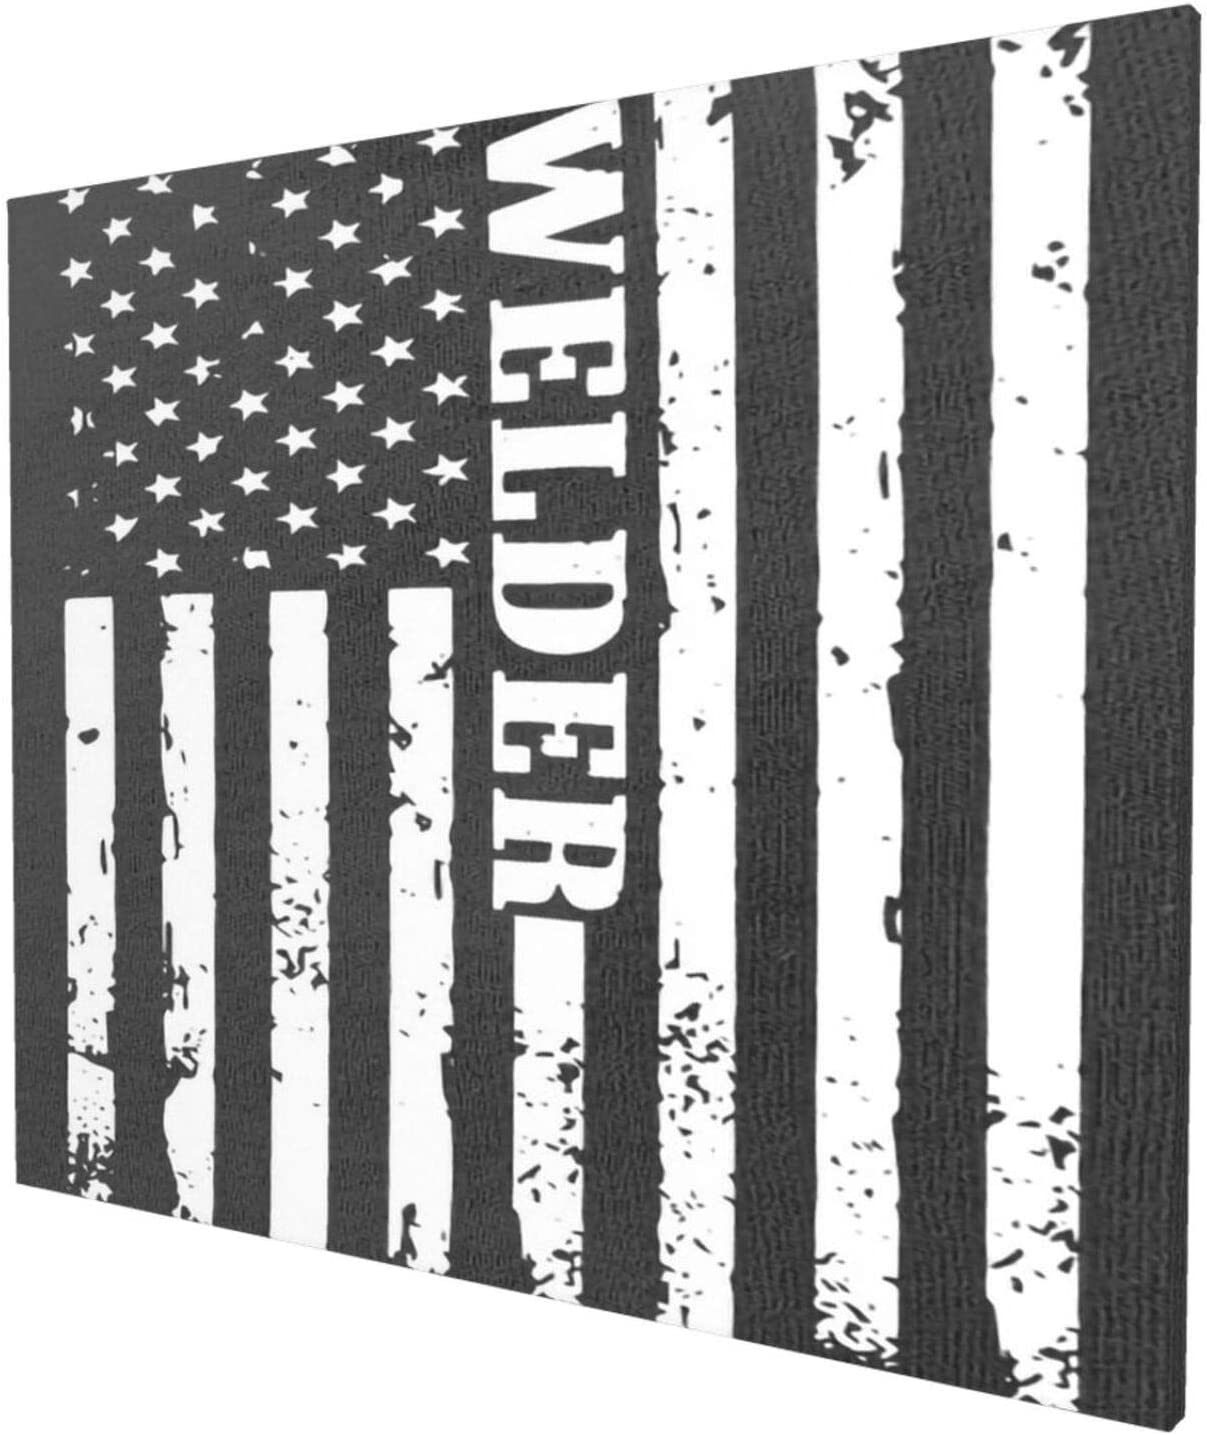 "Canvas Wall Art with American Flag Welder Painting Print, 20"" x 24"" Pictures Paintings Artwork Framed for Living Room Home Decoration"